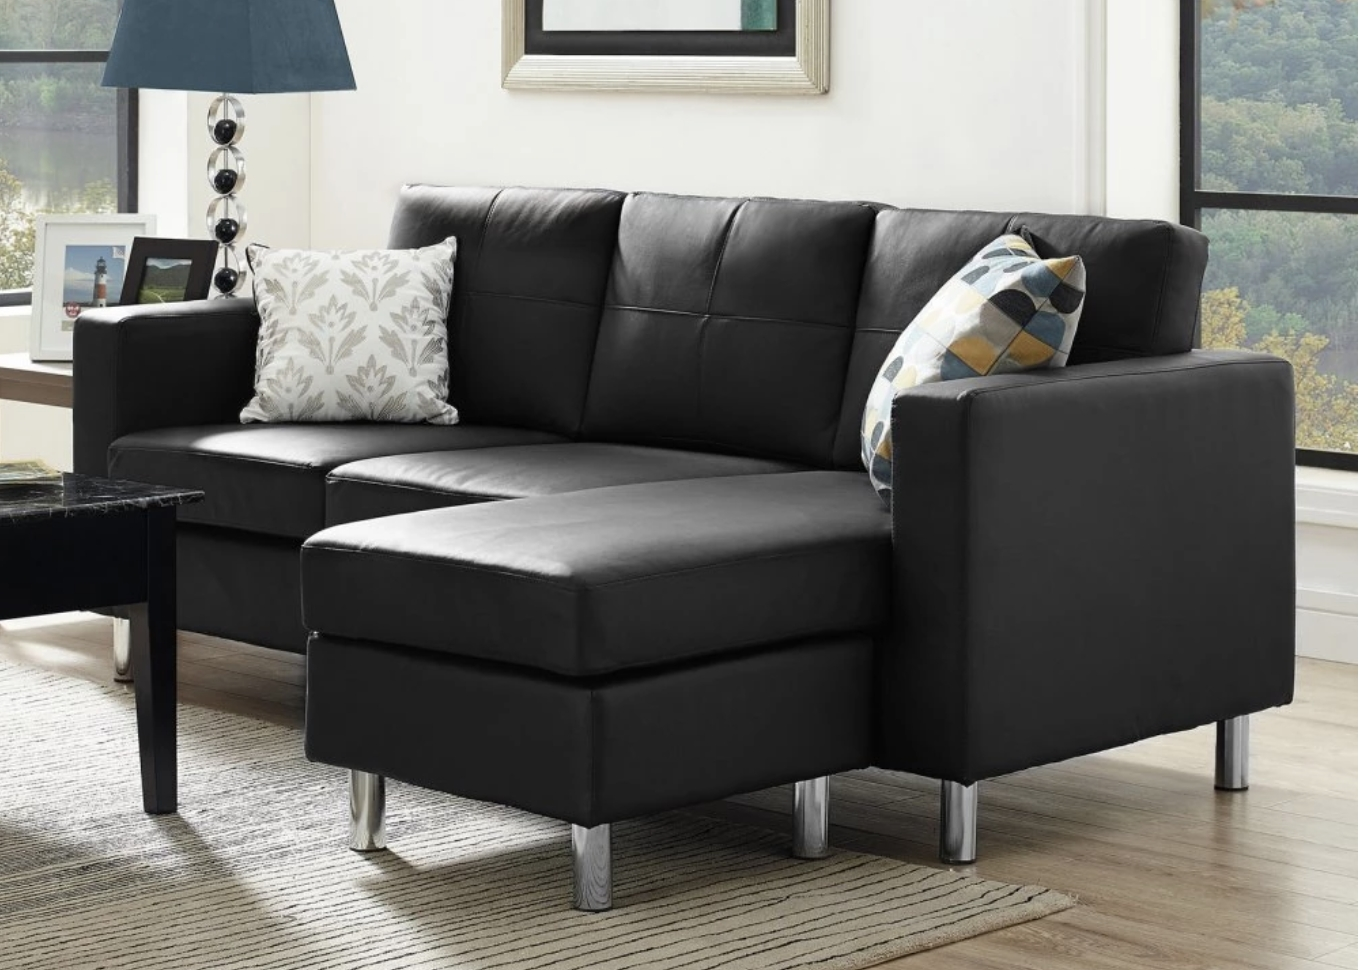 75 Modern Sectional Sofas For Small Spaces (2018) In Most Popular Sectional Sofas That Can Be Rearranged (View 6 of 20)